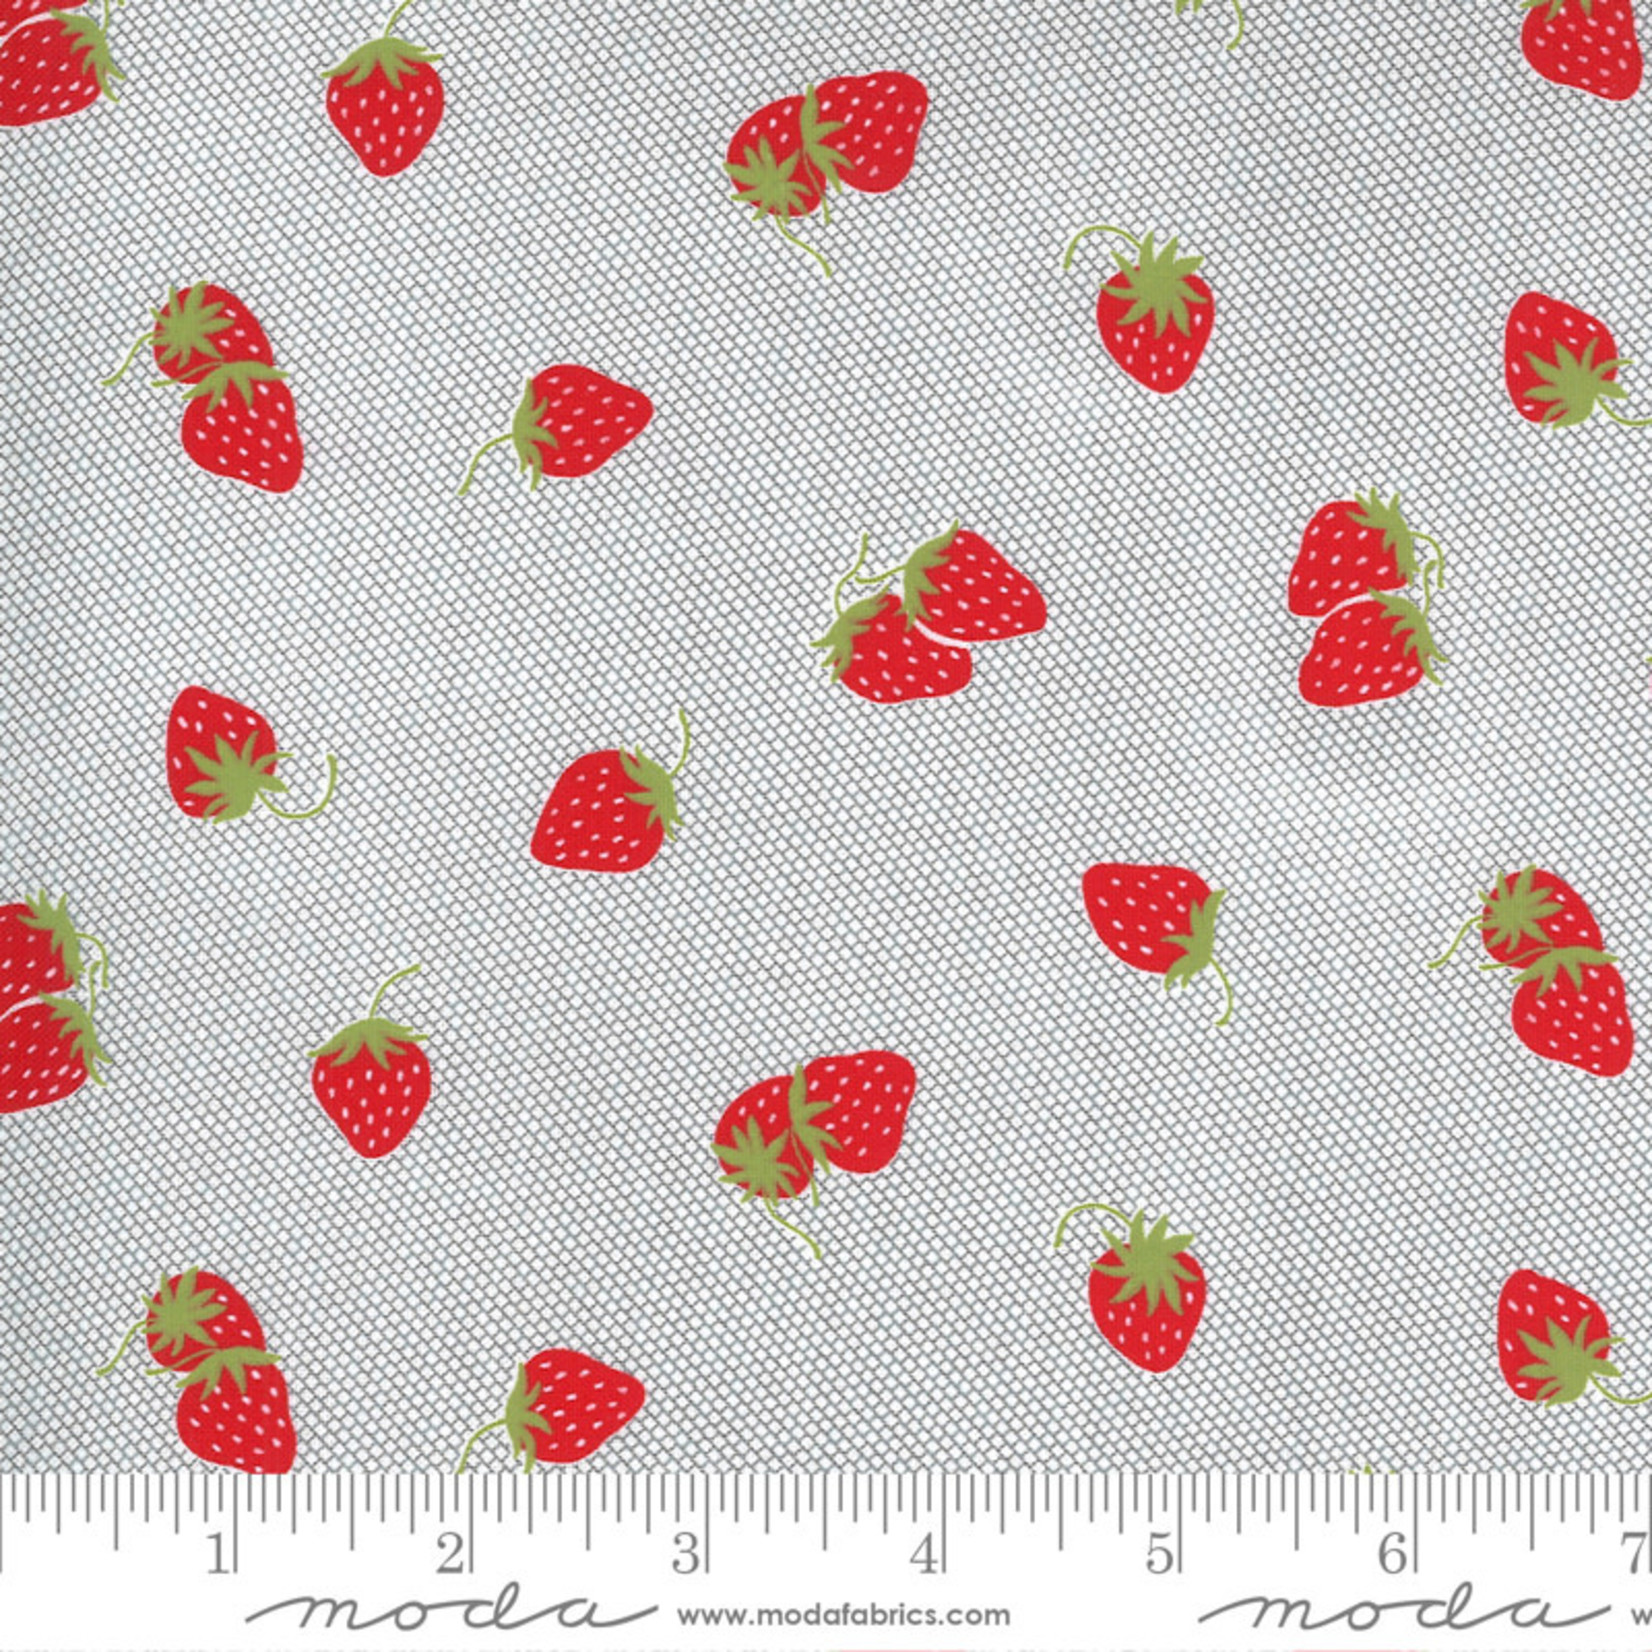 Bonnie & Camille Sunday Stroll, Berry Patch, Grey 55223 17 $0.20 per cm or $20/m